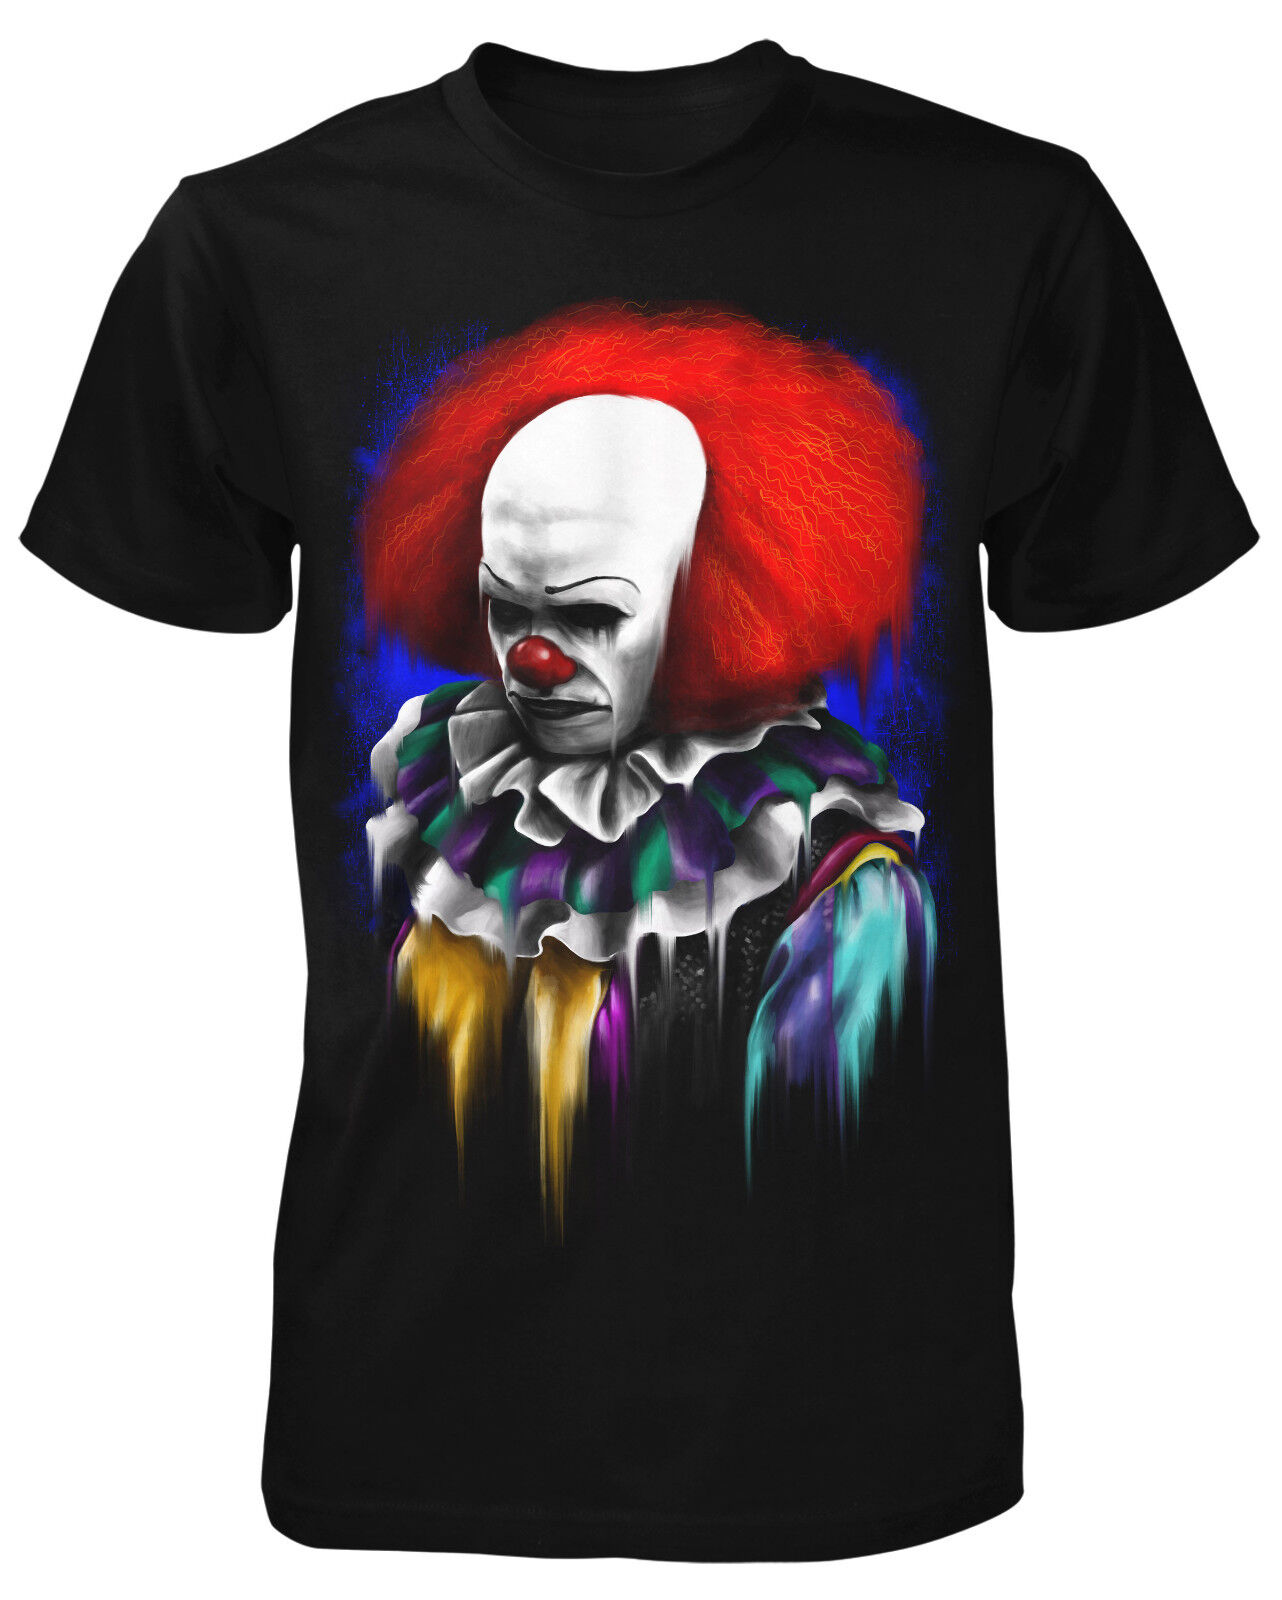 Its Playtime T-Shirt Horror Pennywise Clown Film Movie It Kids Maske Funny Death